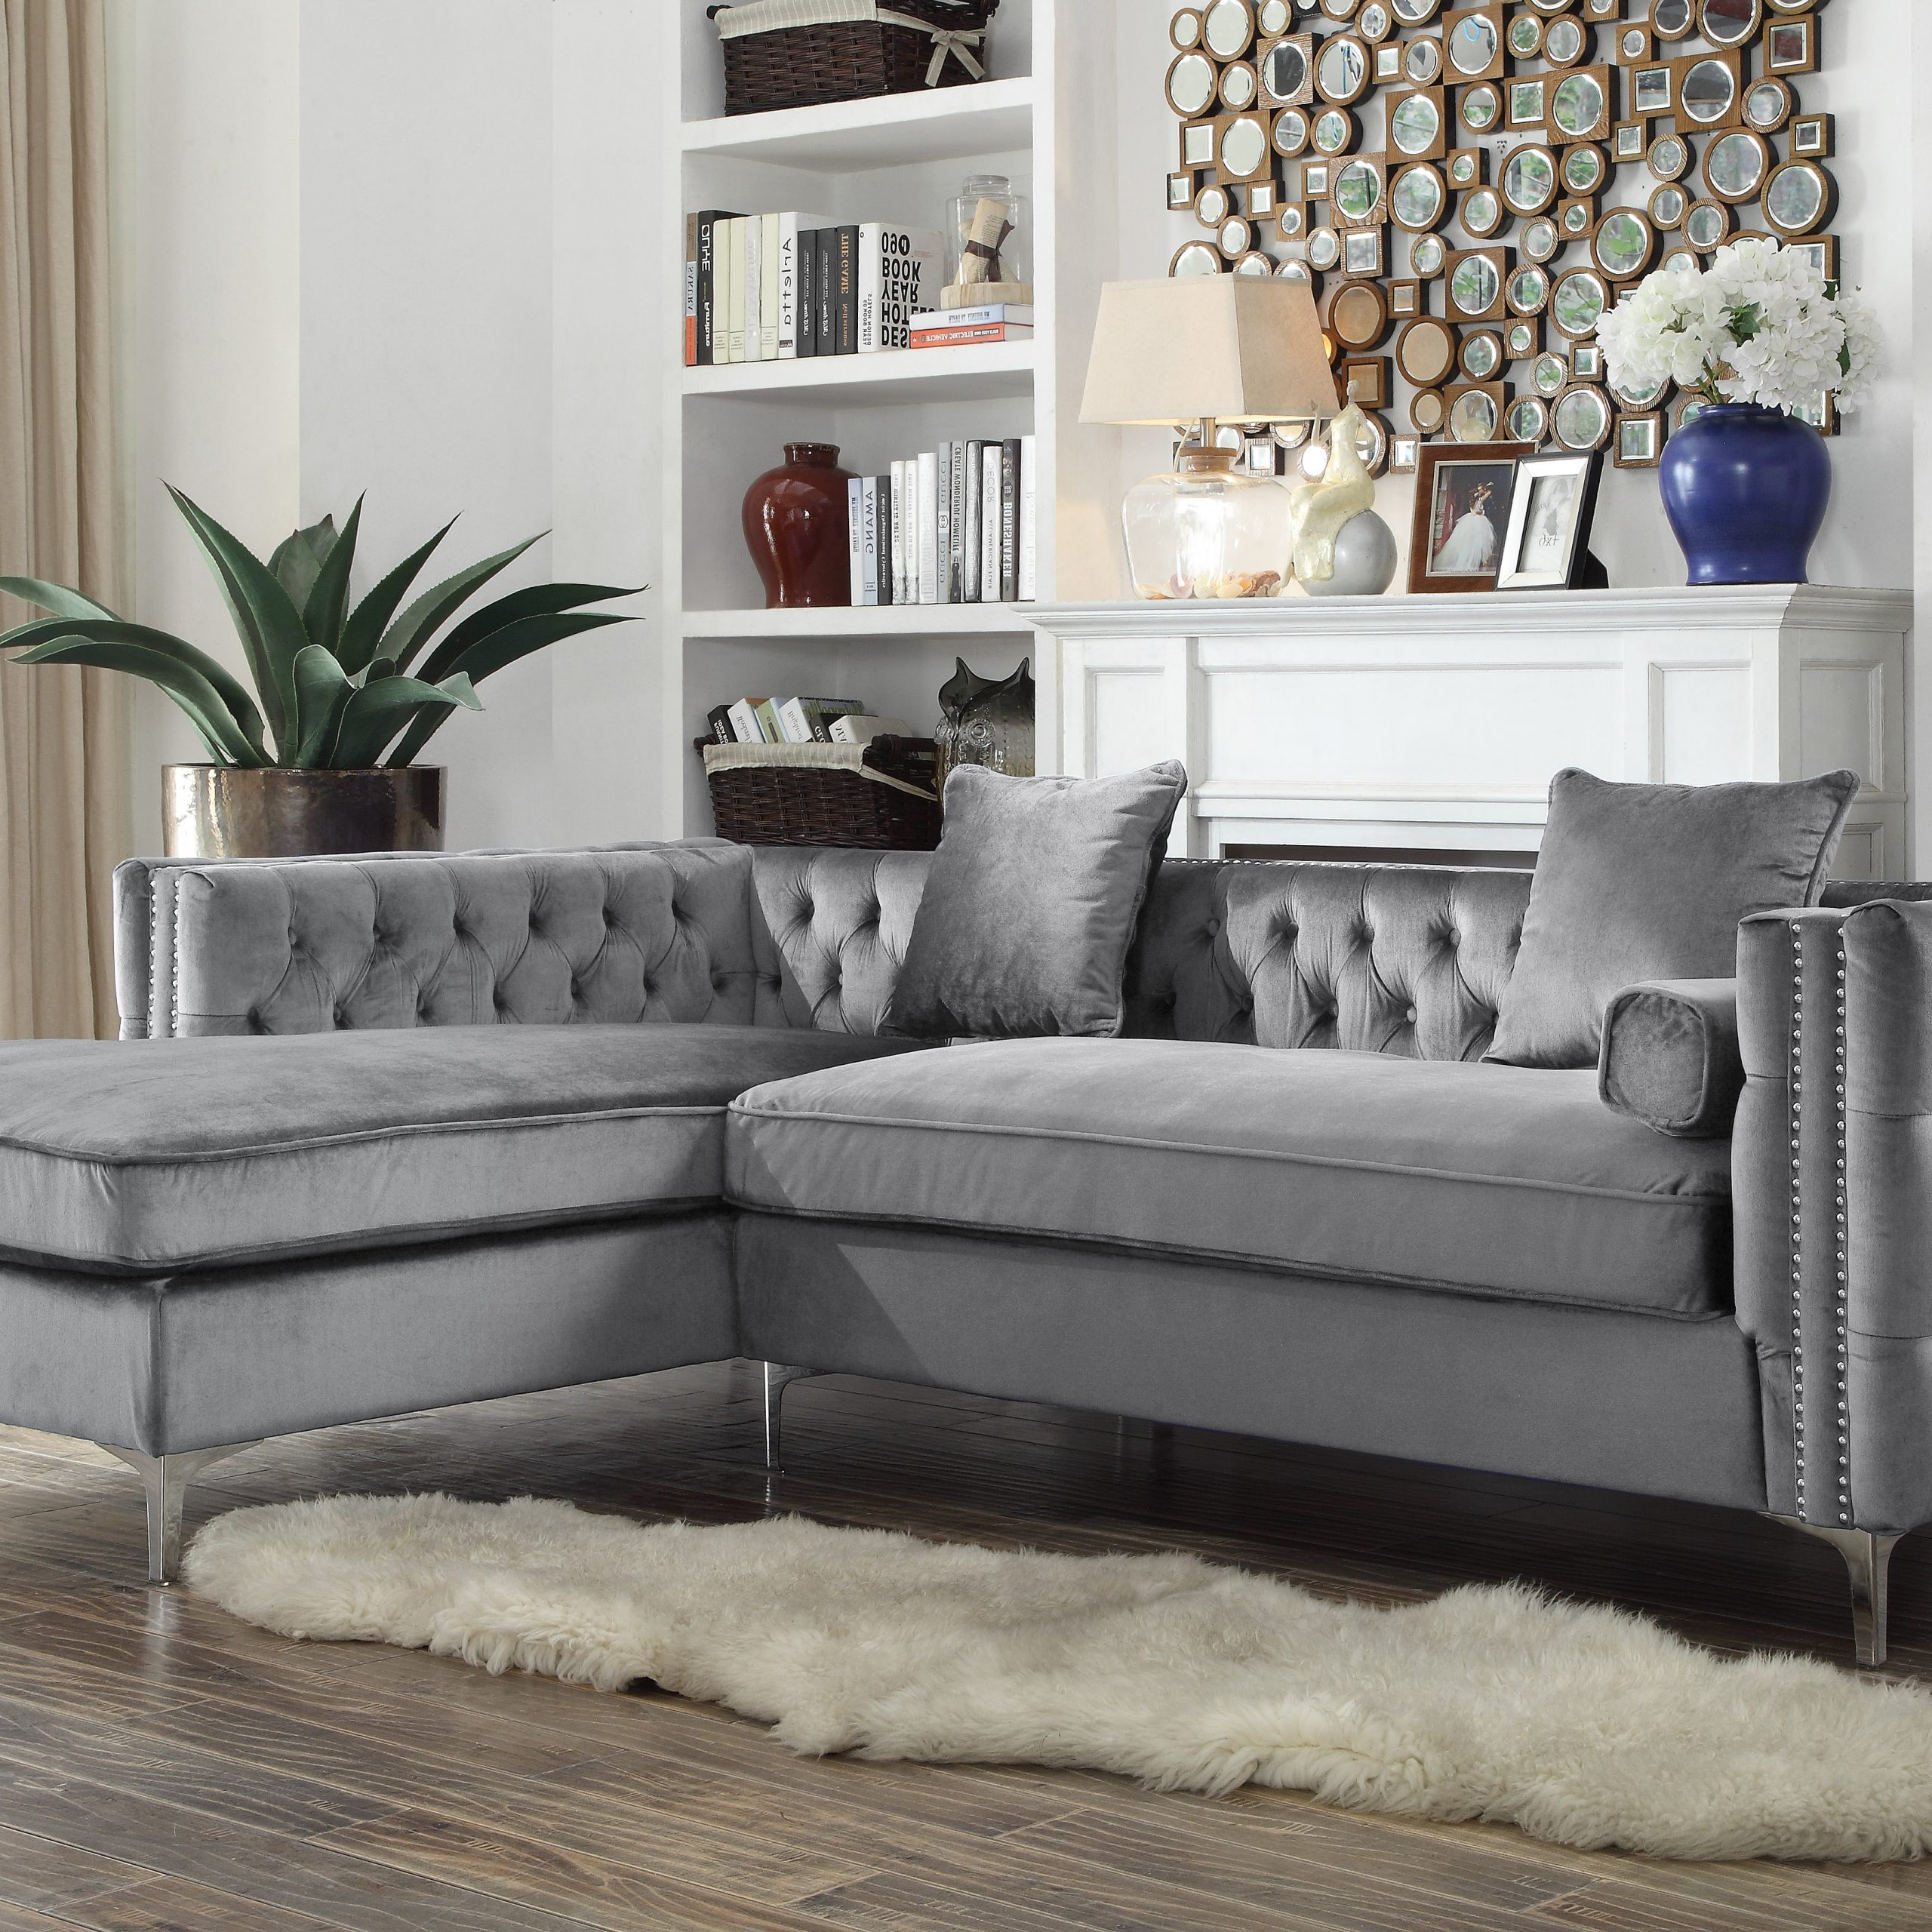 Chic Home Monet Velvet Modern Button Tufted Sectional Sofa Inside Ludovic Contemporary Sofas Light Gray (View 9 of 15)